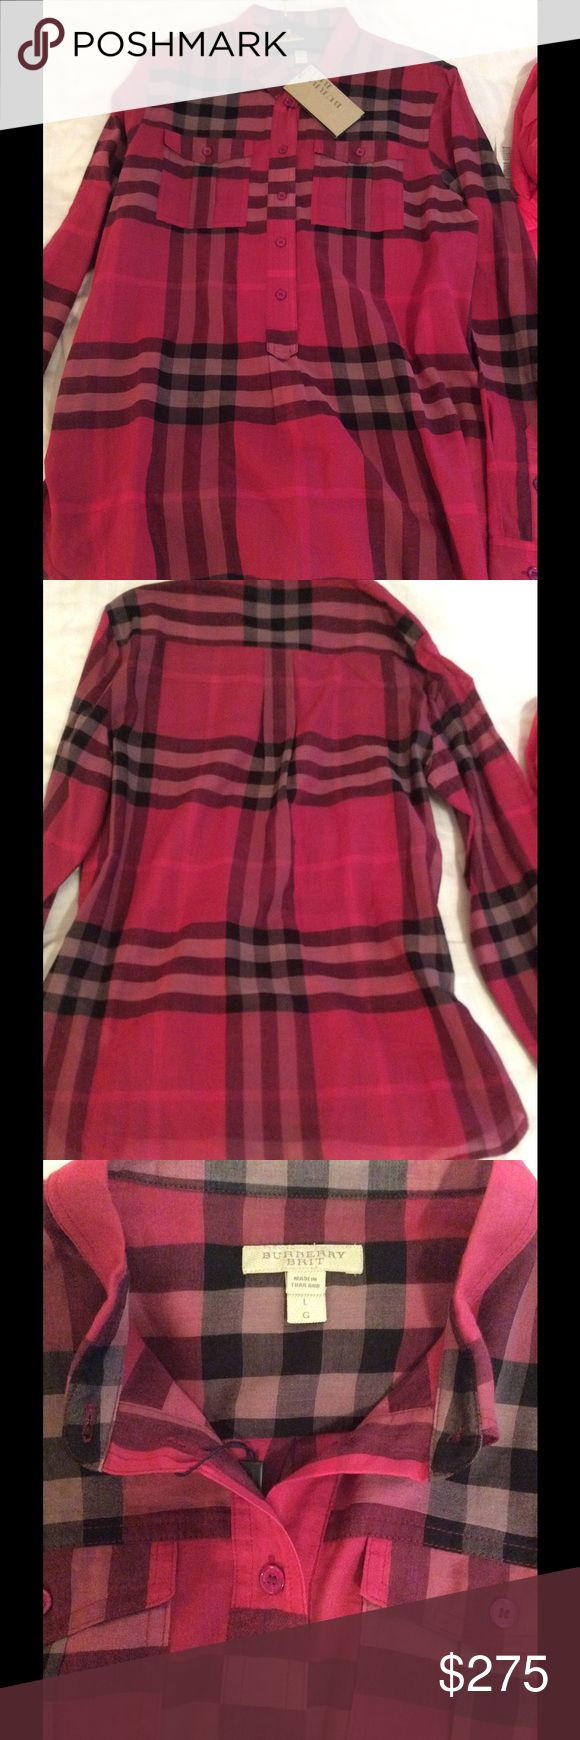 SALE Authentic Burberry Shirt Burberry fuchsia shirt is new with tags. Size is large and is made of 100% lightweight cotton. Burberry Tops Button Down Shirts